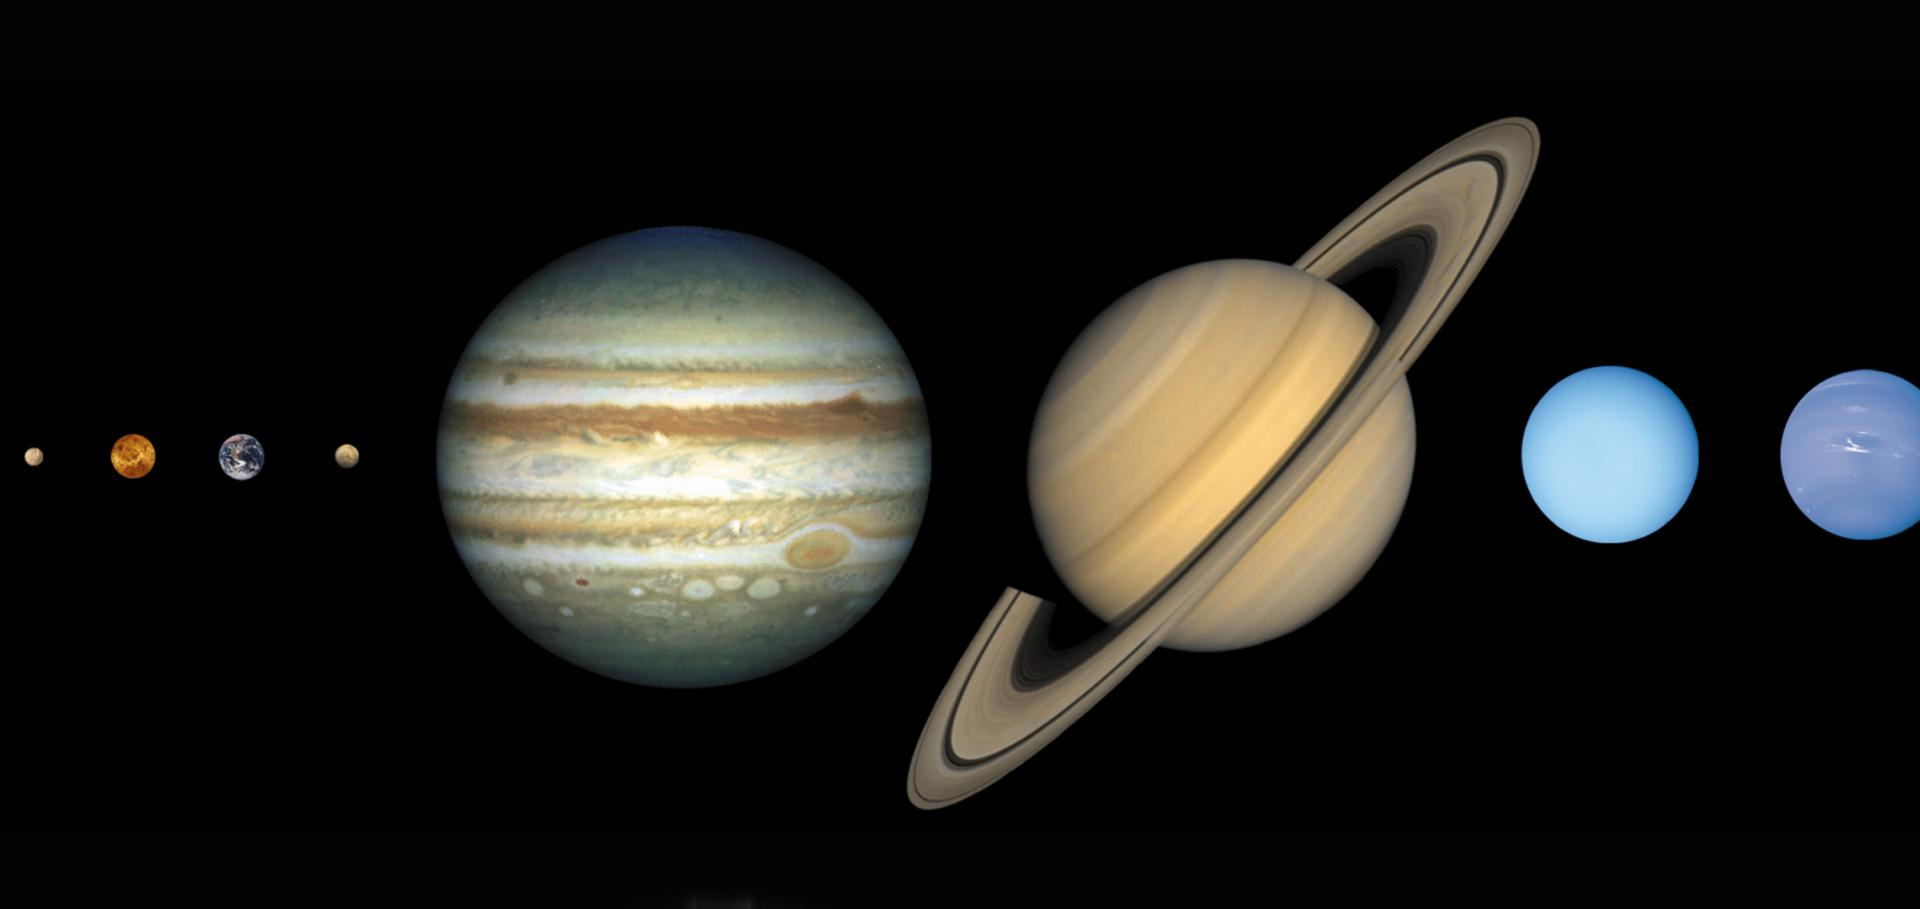 Solar System shown with the planets shown in approximately the right size relative to one another.